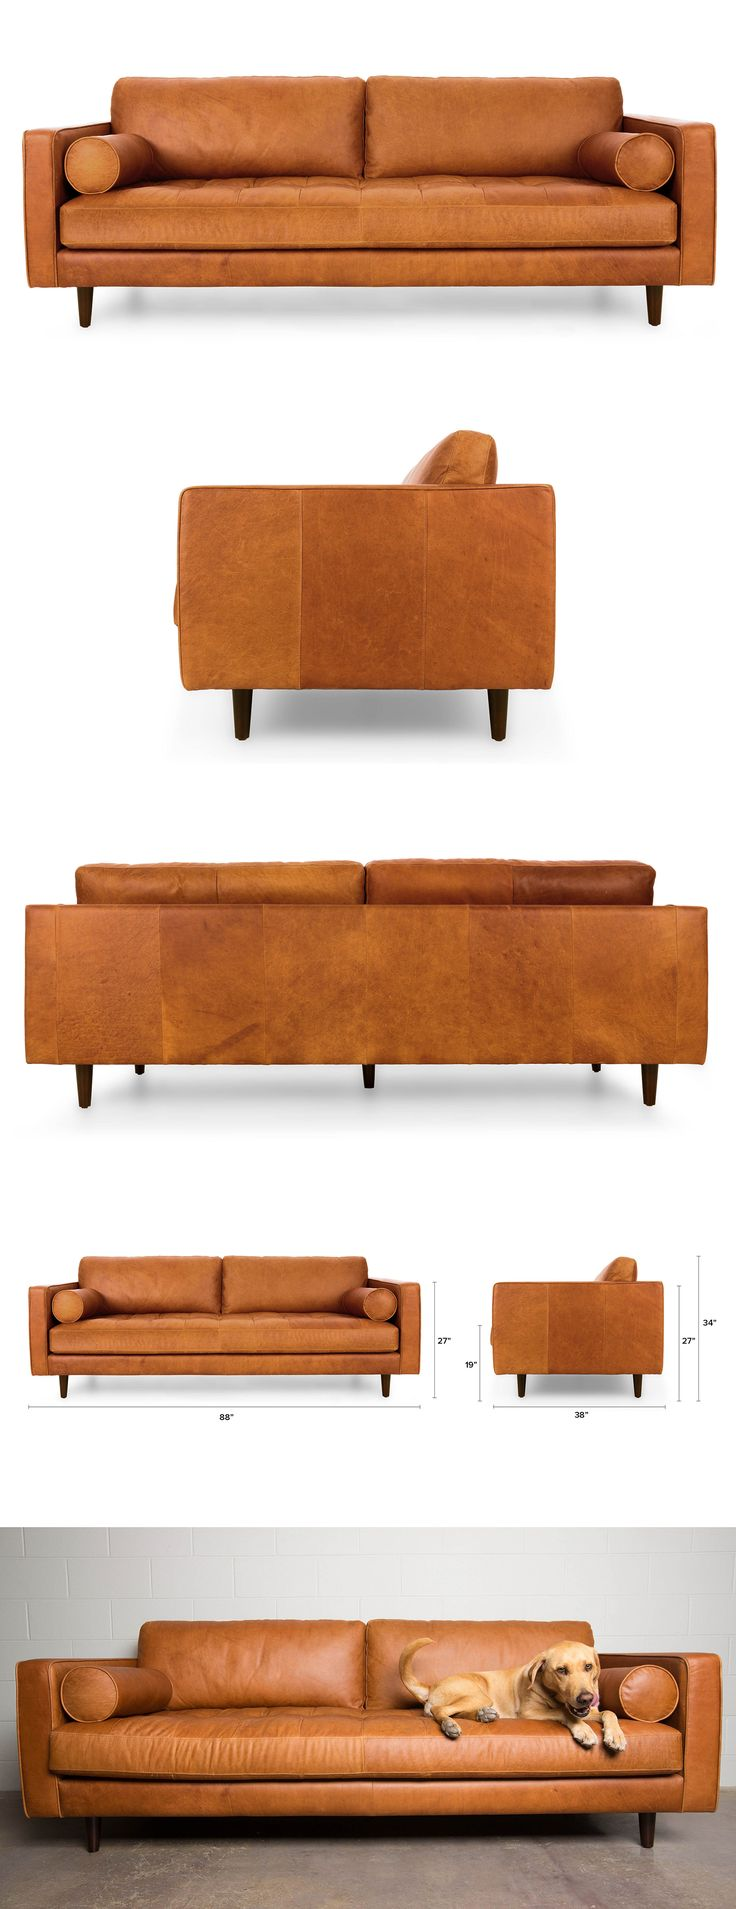 Best Classic Sofa Ideas On Pinterest Chesterfield Sofas